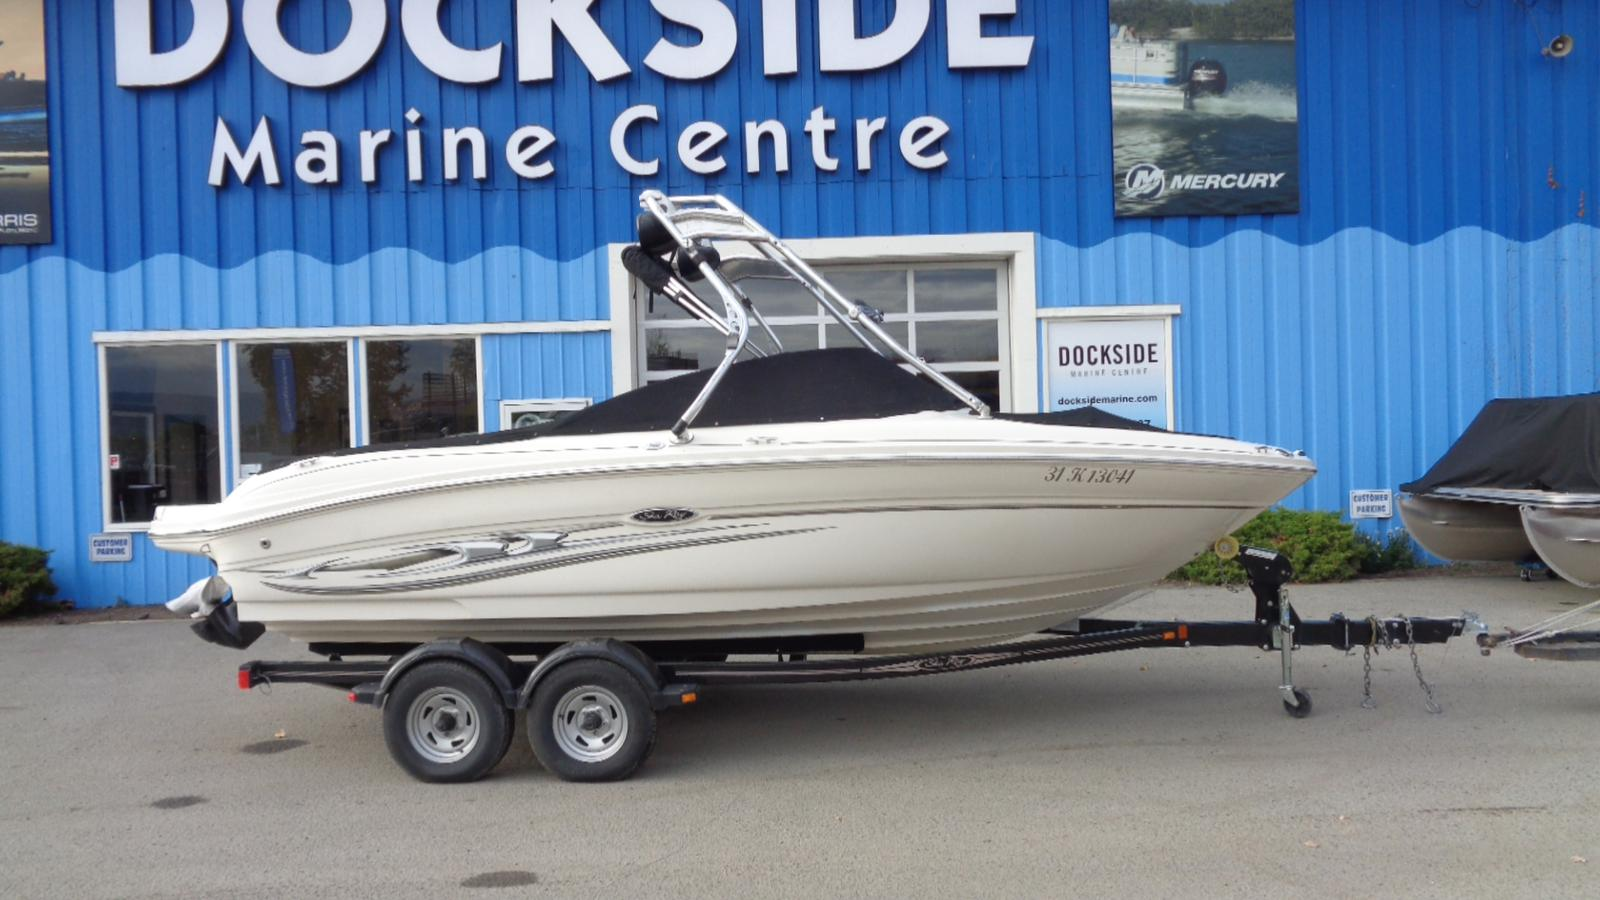 For Sale: 2005 Sea Ray 200 Select 21ft<br/>Dockside Marine Centre, LTD.